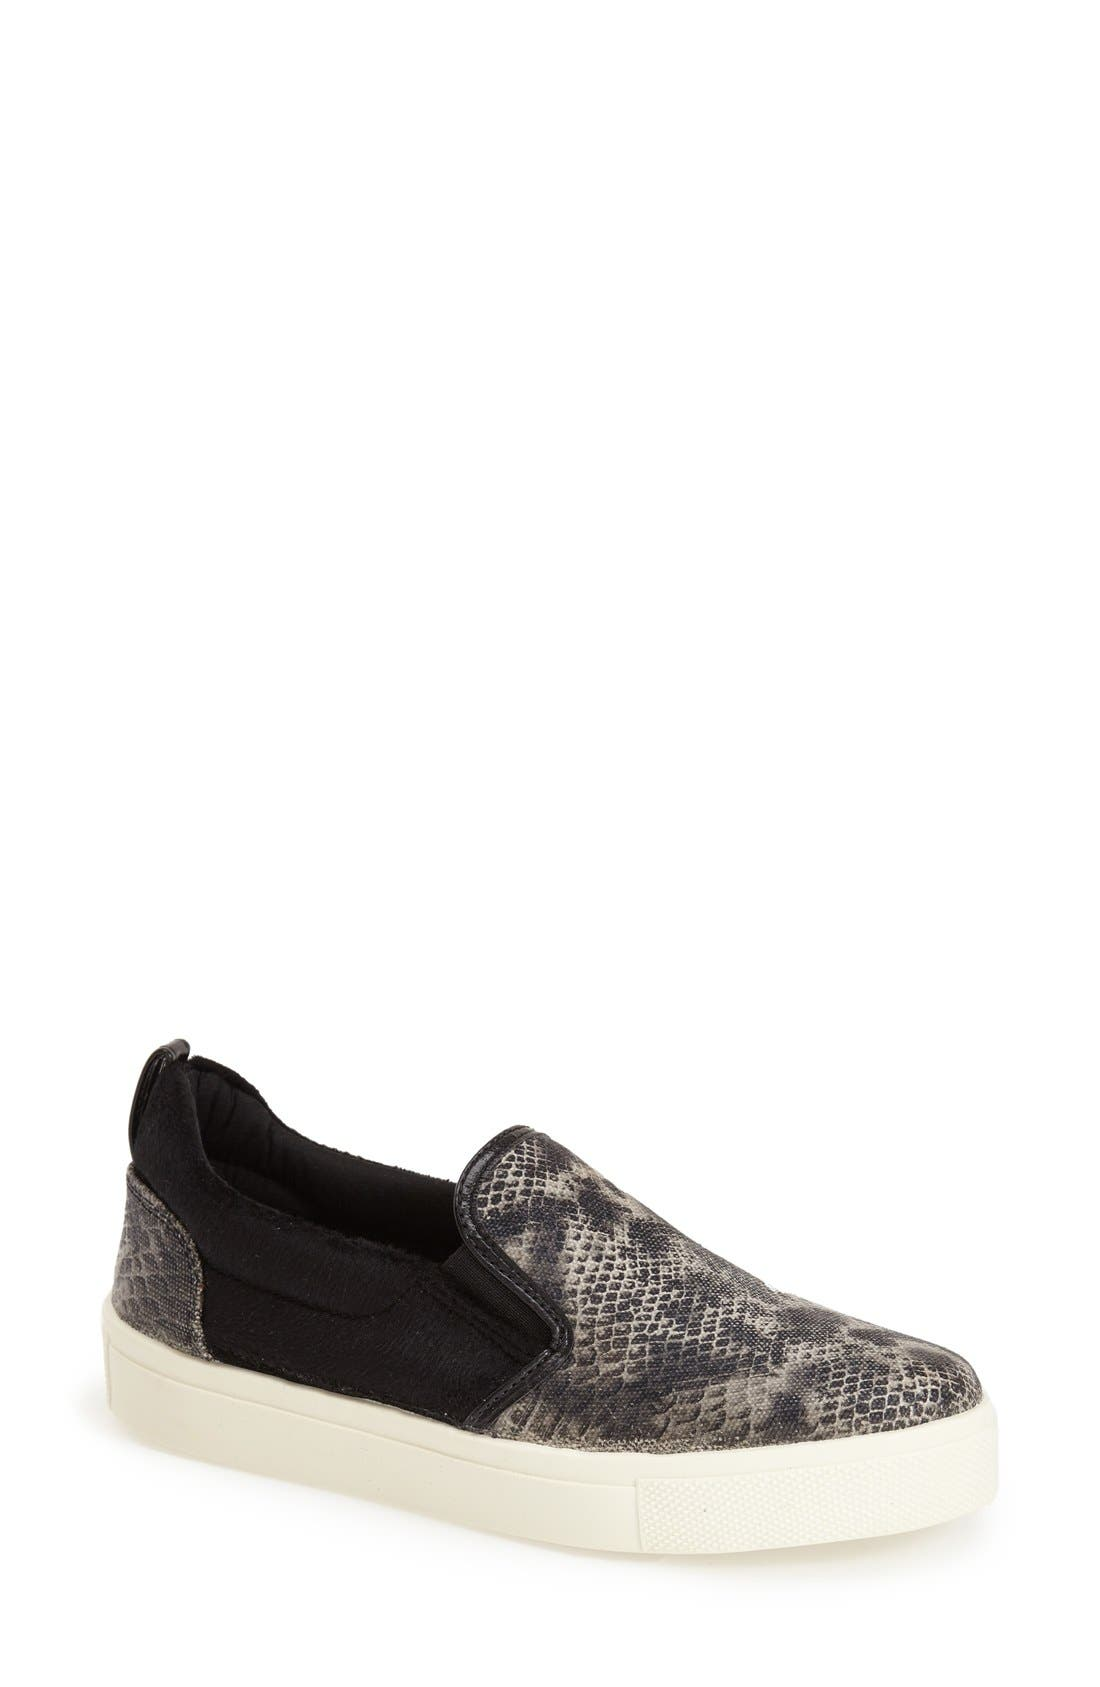 Alternate Image 1 Selected - Topshop Print Slip-On (Women)